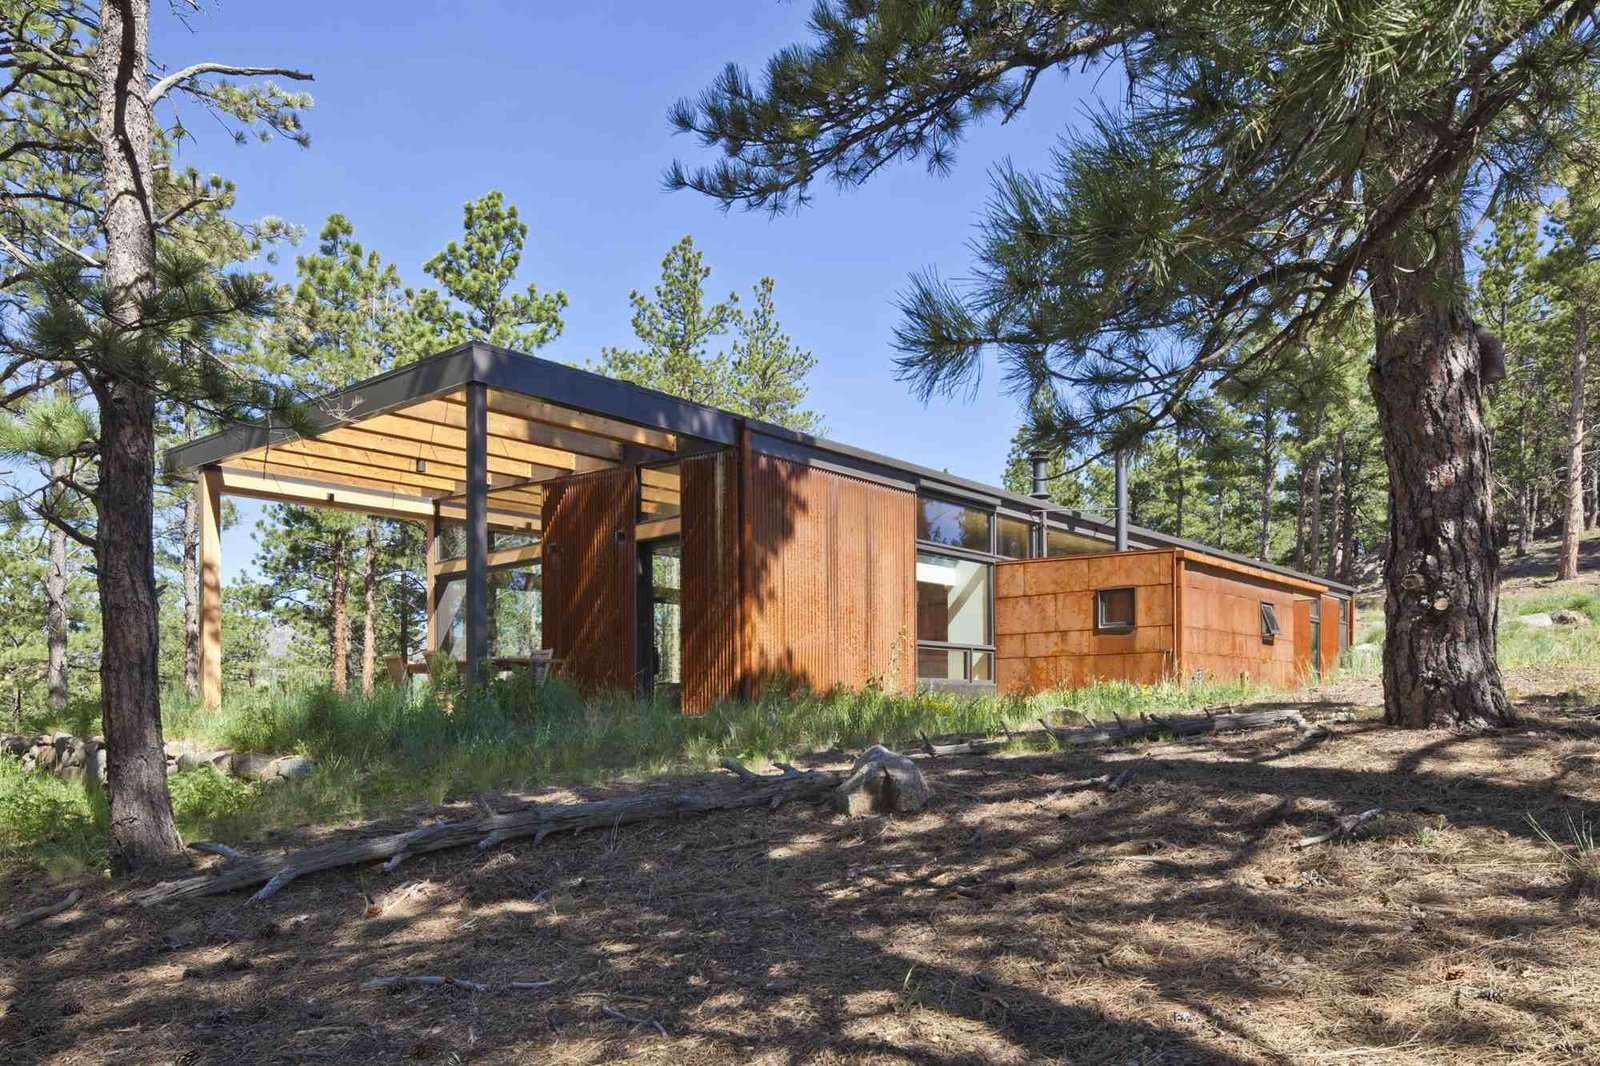 """Exterior, Metal Siding Material, and House Building Type A high band of windows on the east side of the home lets light in, while a simple wood overhang shades an outdoor dining area on the terrace with mountain views. """"On clear days, it feels like you can see across the high plains to Kansas,"""" says Hirsh.   Photo by Ron Johnson.  Cabins & Hideouts from Modern Homes in Colorado"""